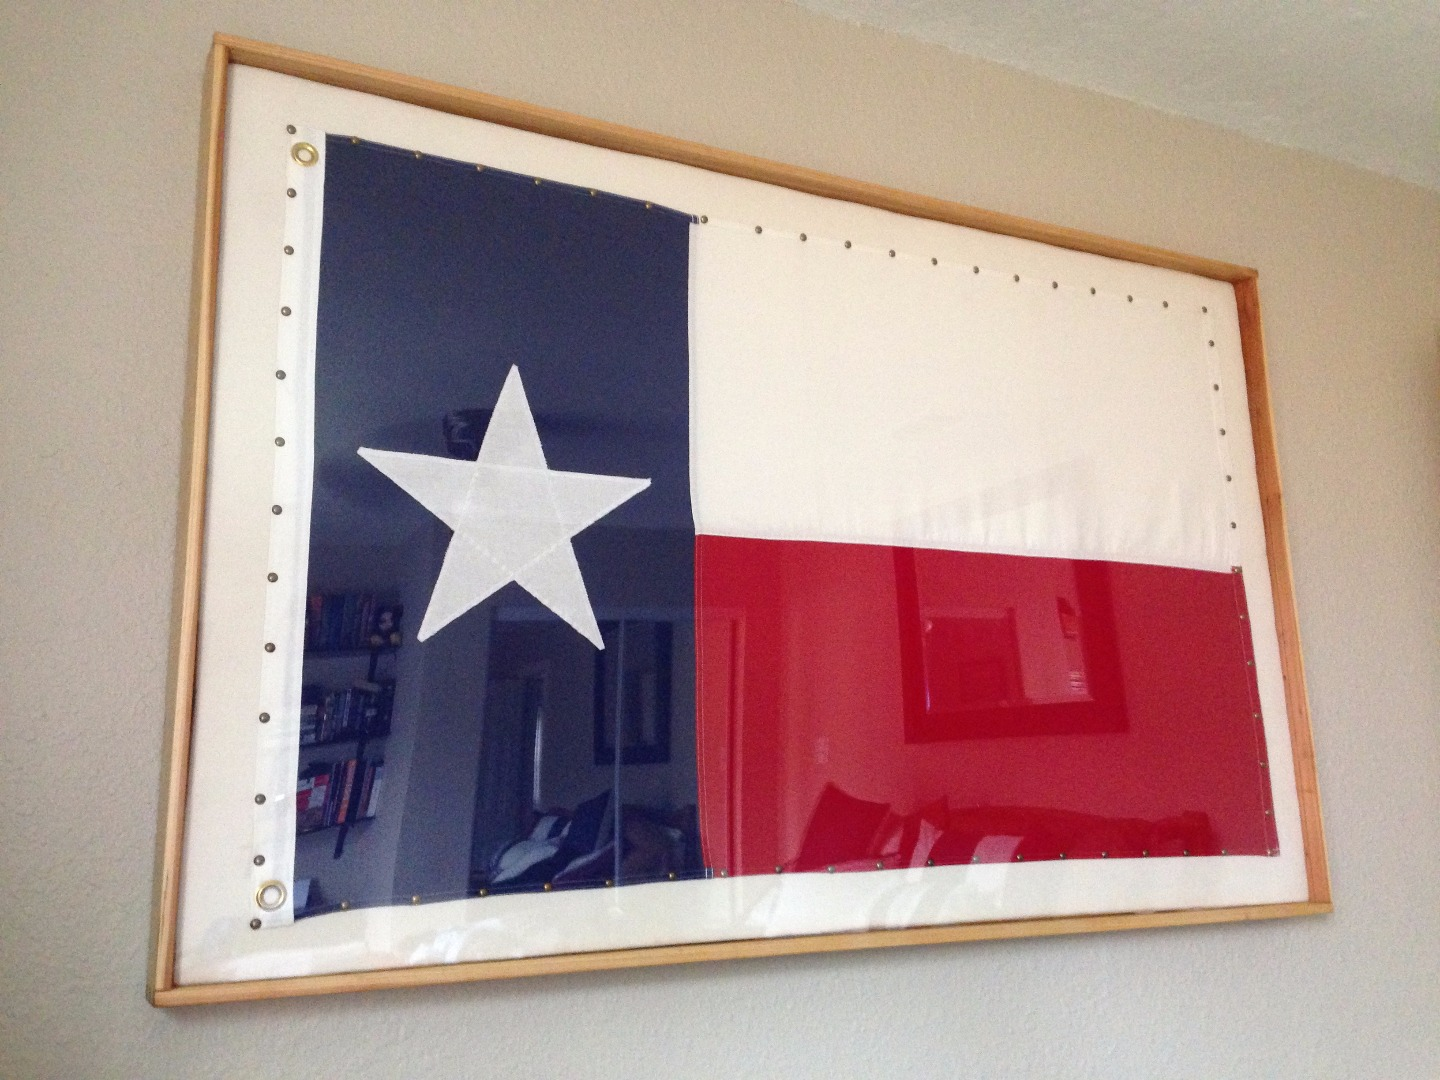 3\'x5\' Flag Frame: 6 Steps (with Pictures)